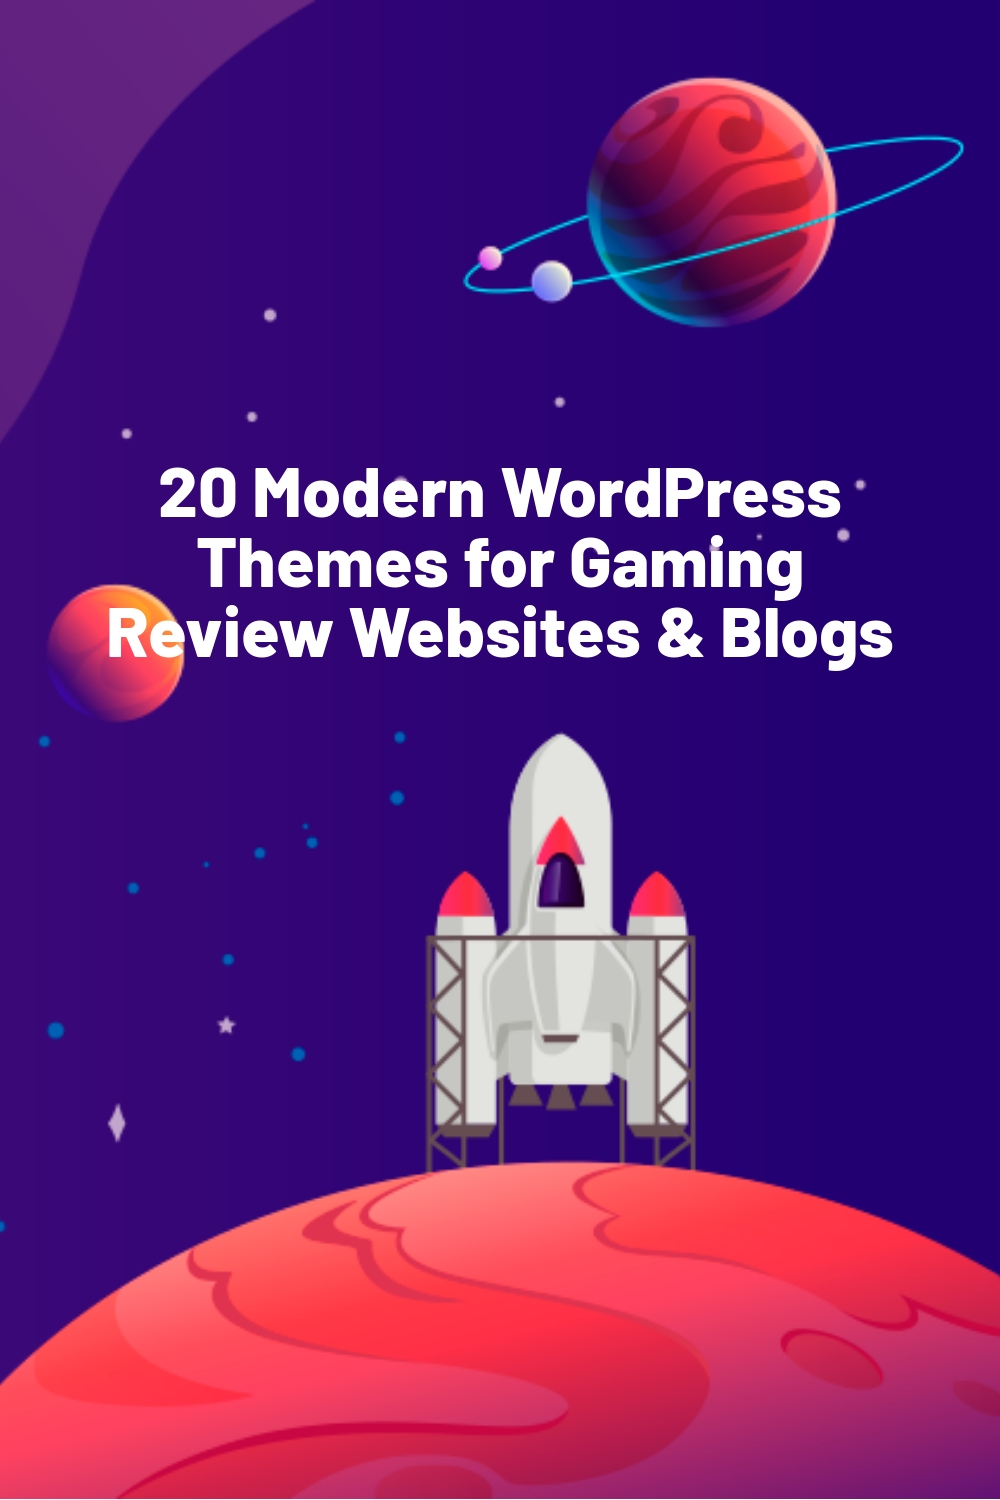 20 Modern WordPress Themes for Gaming Review Websites & Blogs